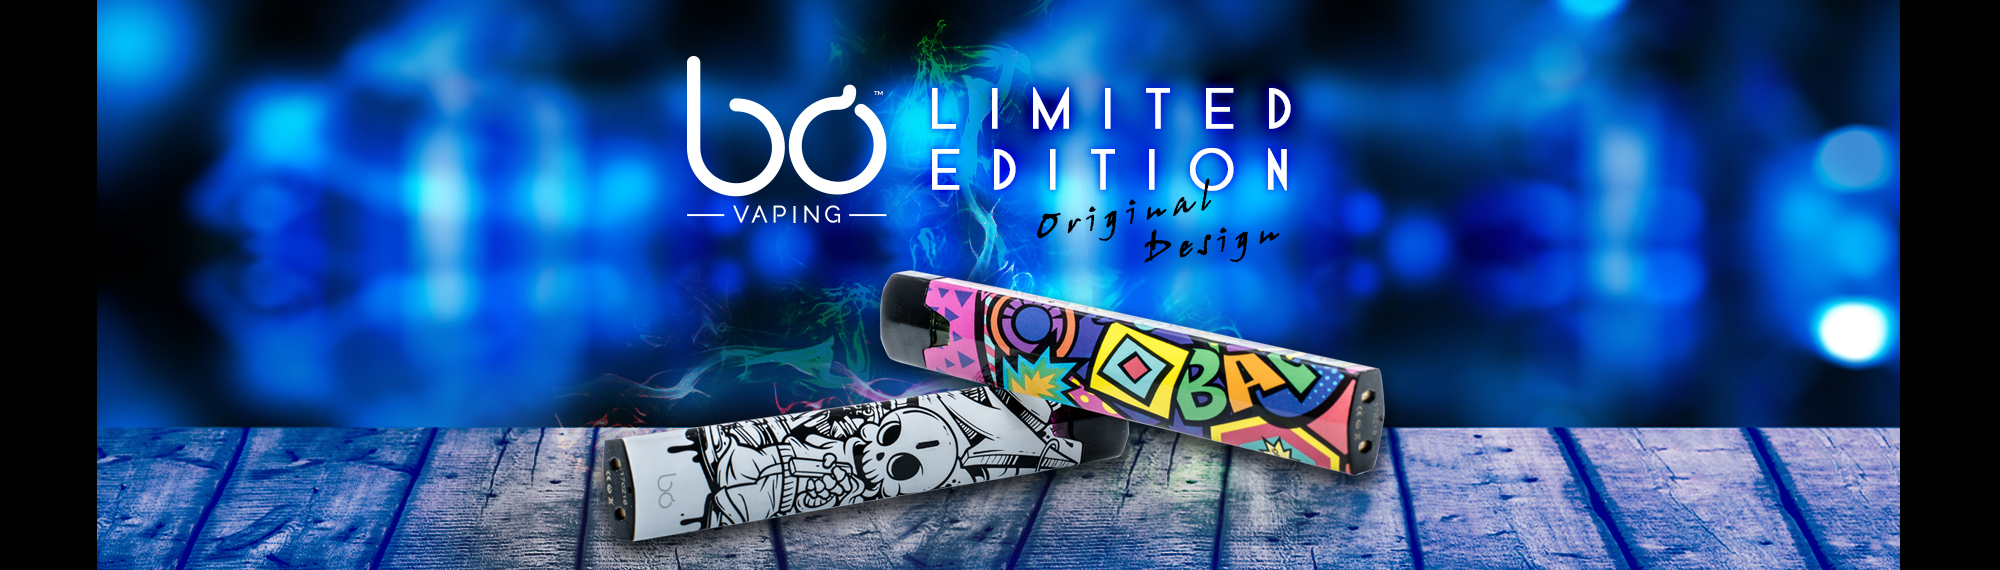 bovaping limited edition